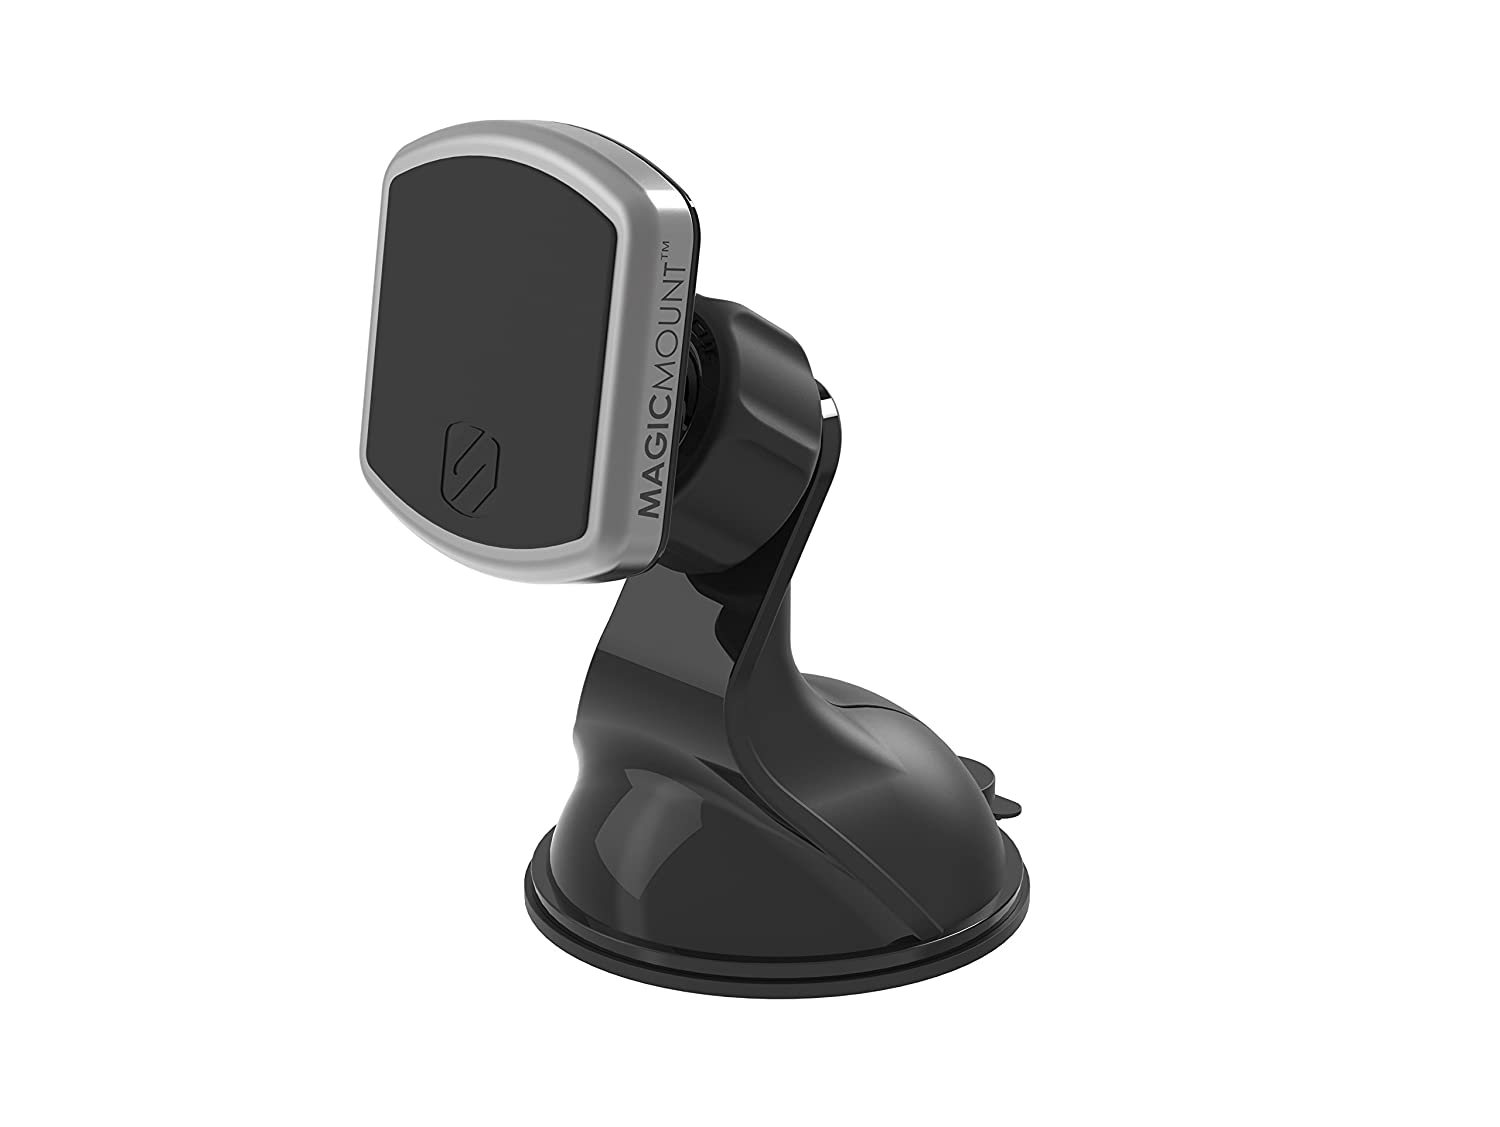 SCOSCHE MPWDB MagicMount Pro Universal Magnetic Window & Dash Smartphone/GPS Mount for the Car, Home or Office in Frustration Free Packaging